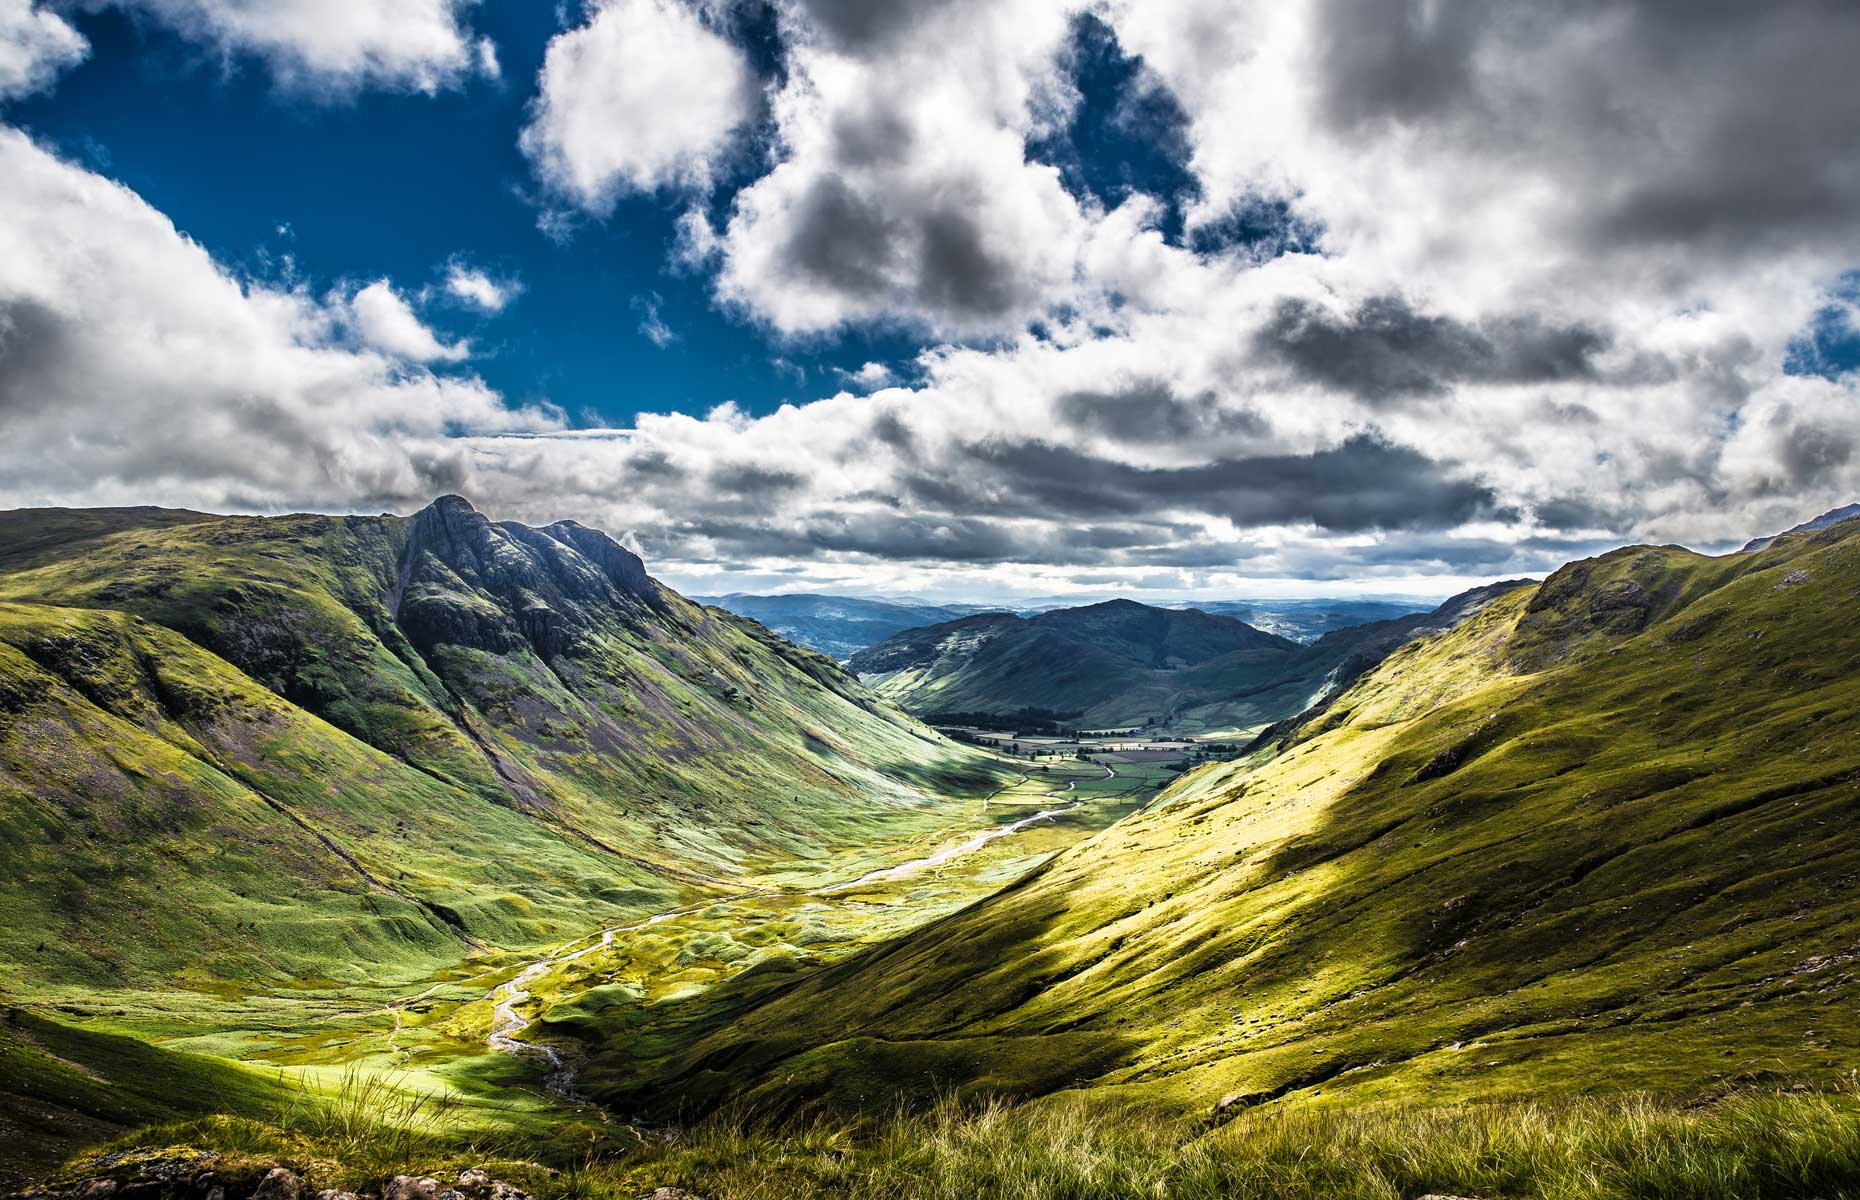 Scafell Pike view (Image: Gregory Culley/Shutterstock)